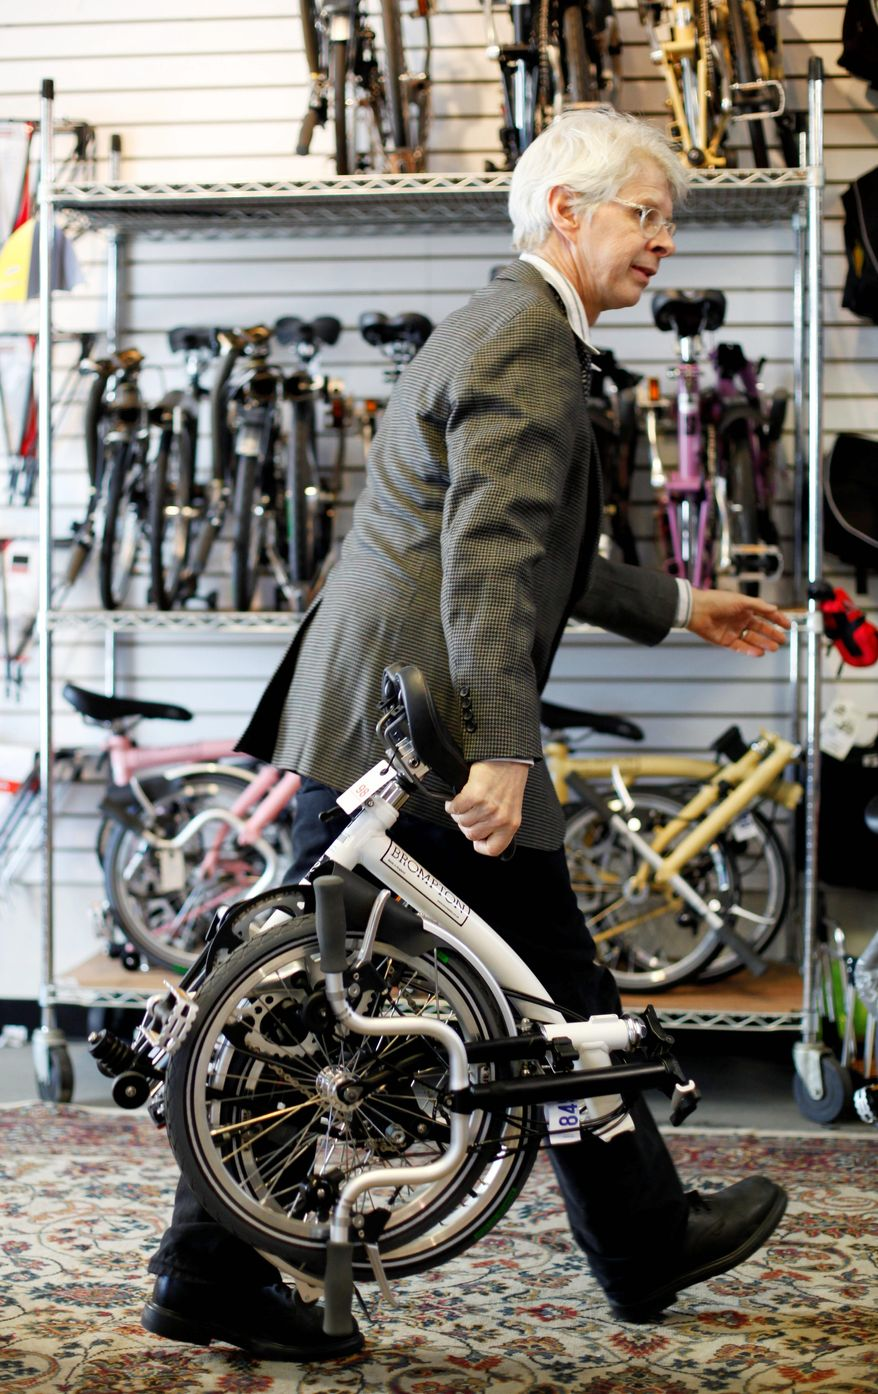 """""""It's light, it's fast. It has a quirky charm. It's tanklike but incredibly high-tech,"""" Michael McGettigan says about the Brompton bicycle. His shop was one of the first in the U.S. to sell the British bikes. (Associated Press)"""